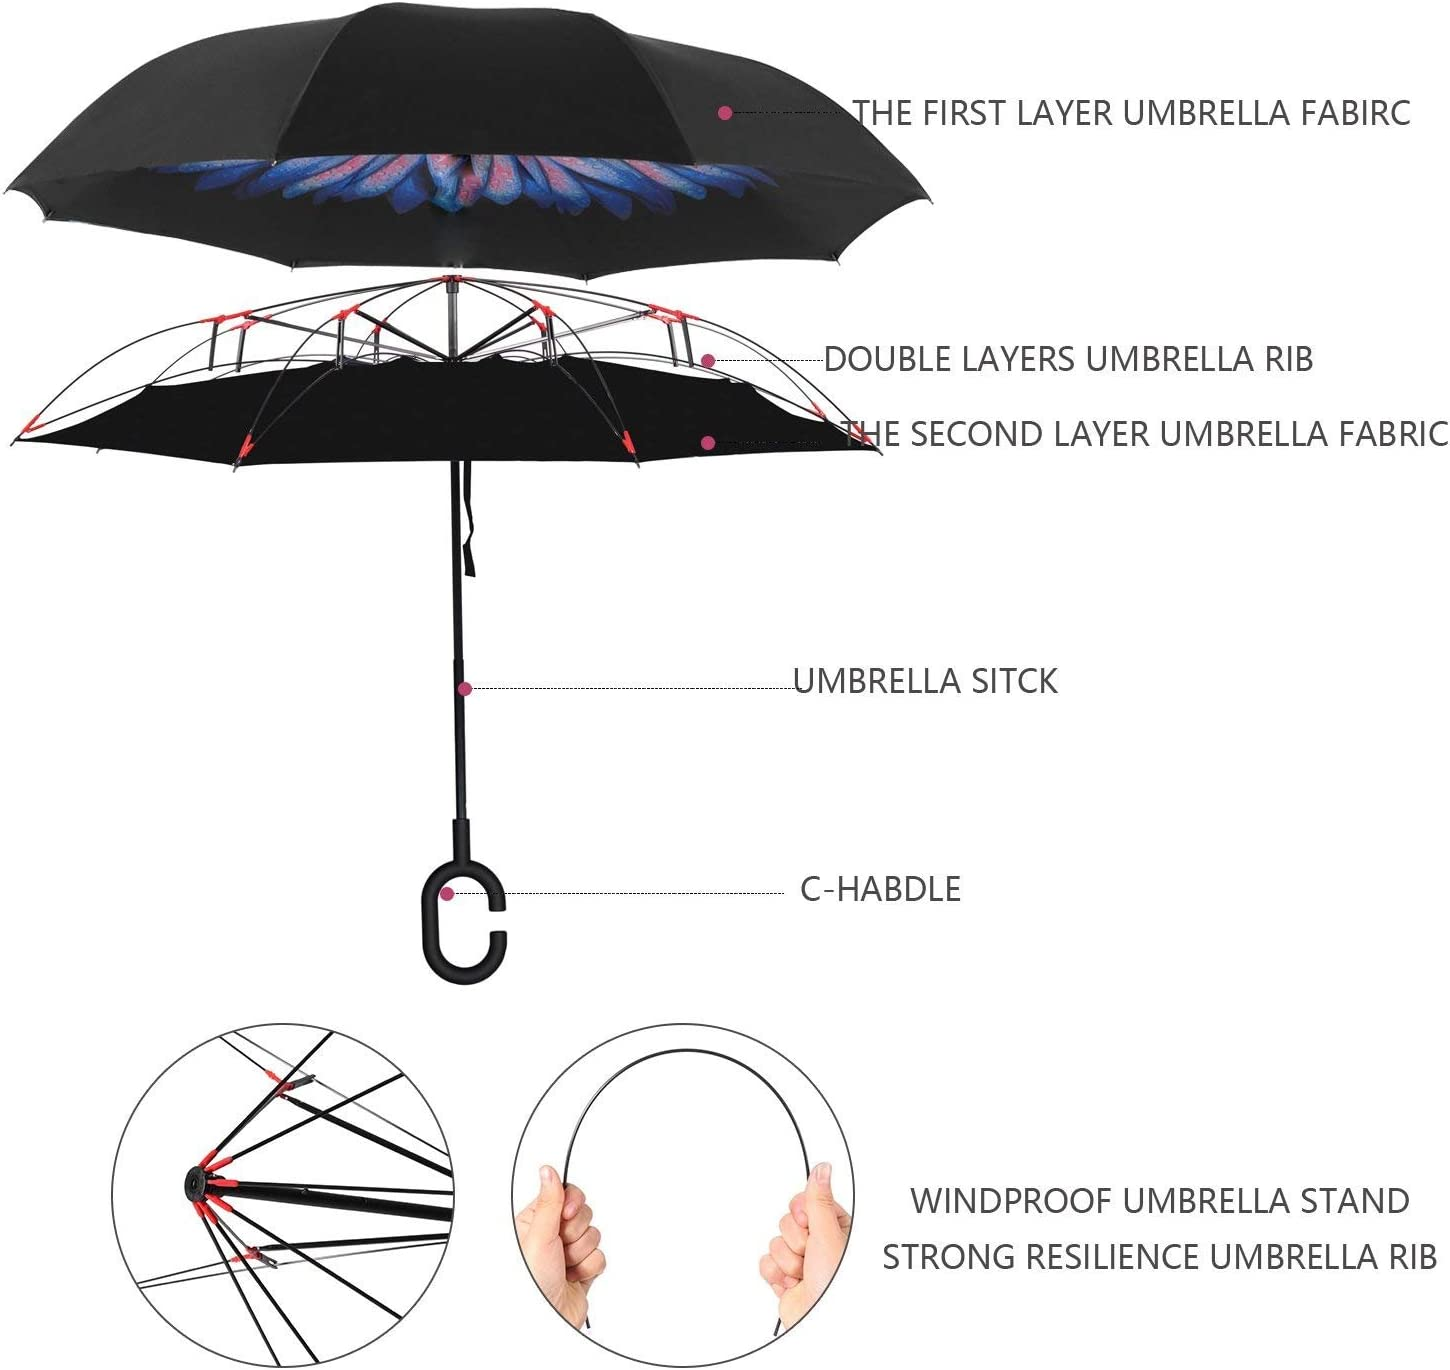 First Love Sumeber Double Layer Inverted Umbrella Inside Out Hand Free with Carrying Bag for Travel and Car Outdoor Windproof Reverse Folding Umbrella with C Shape Handle Self Standing